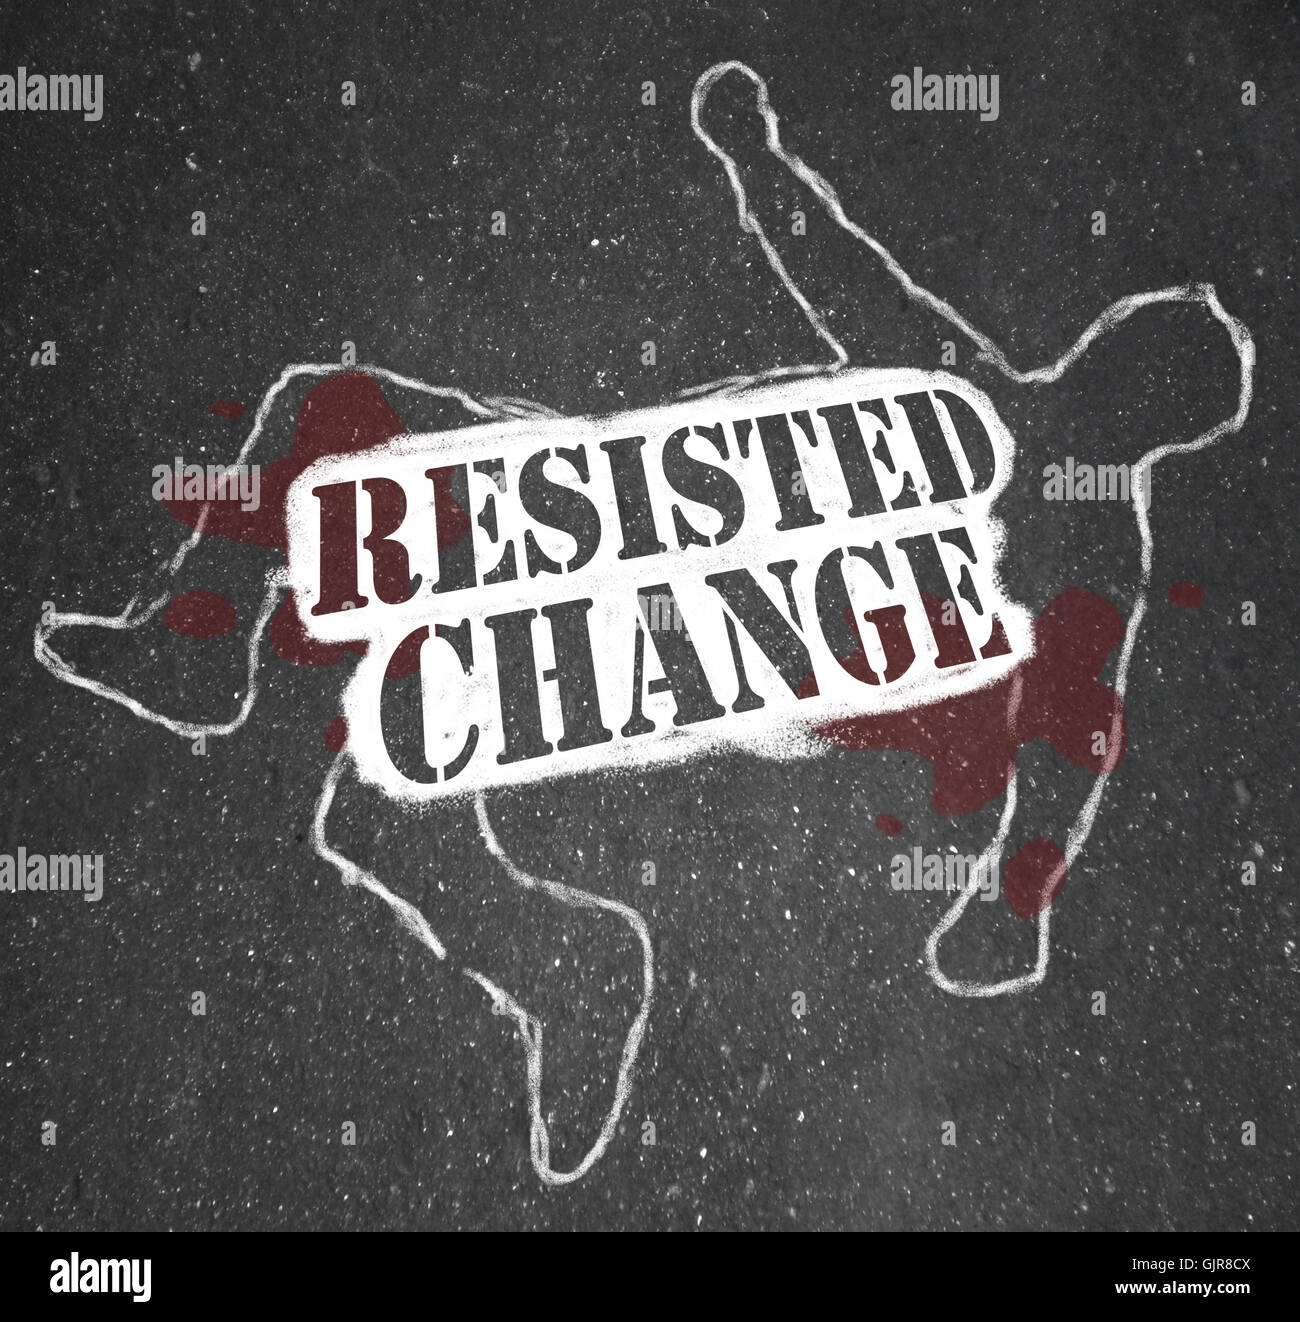 Resisting Change Leads to Obsolescence or Death - Stock Image